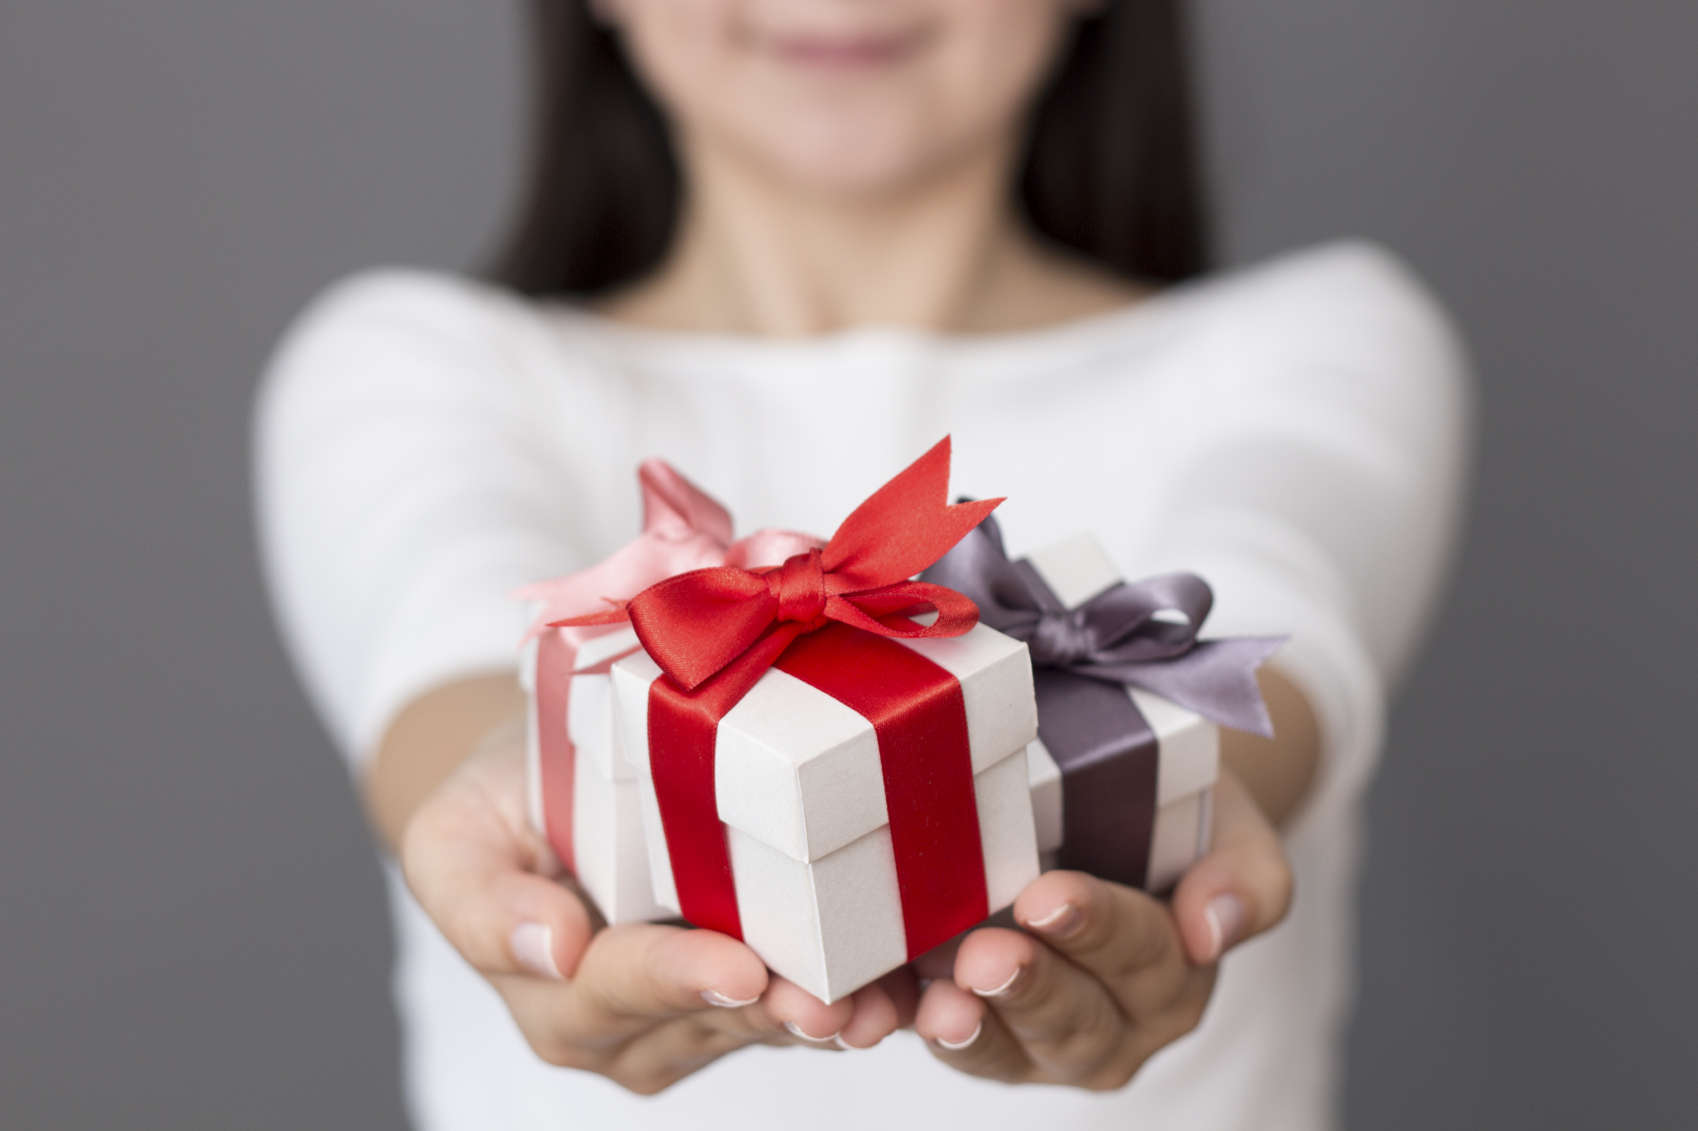 Isn't it better to give than to receive?